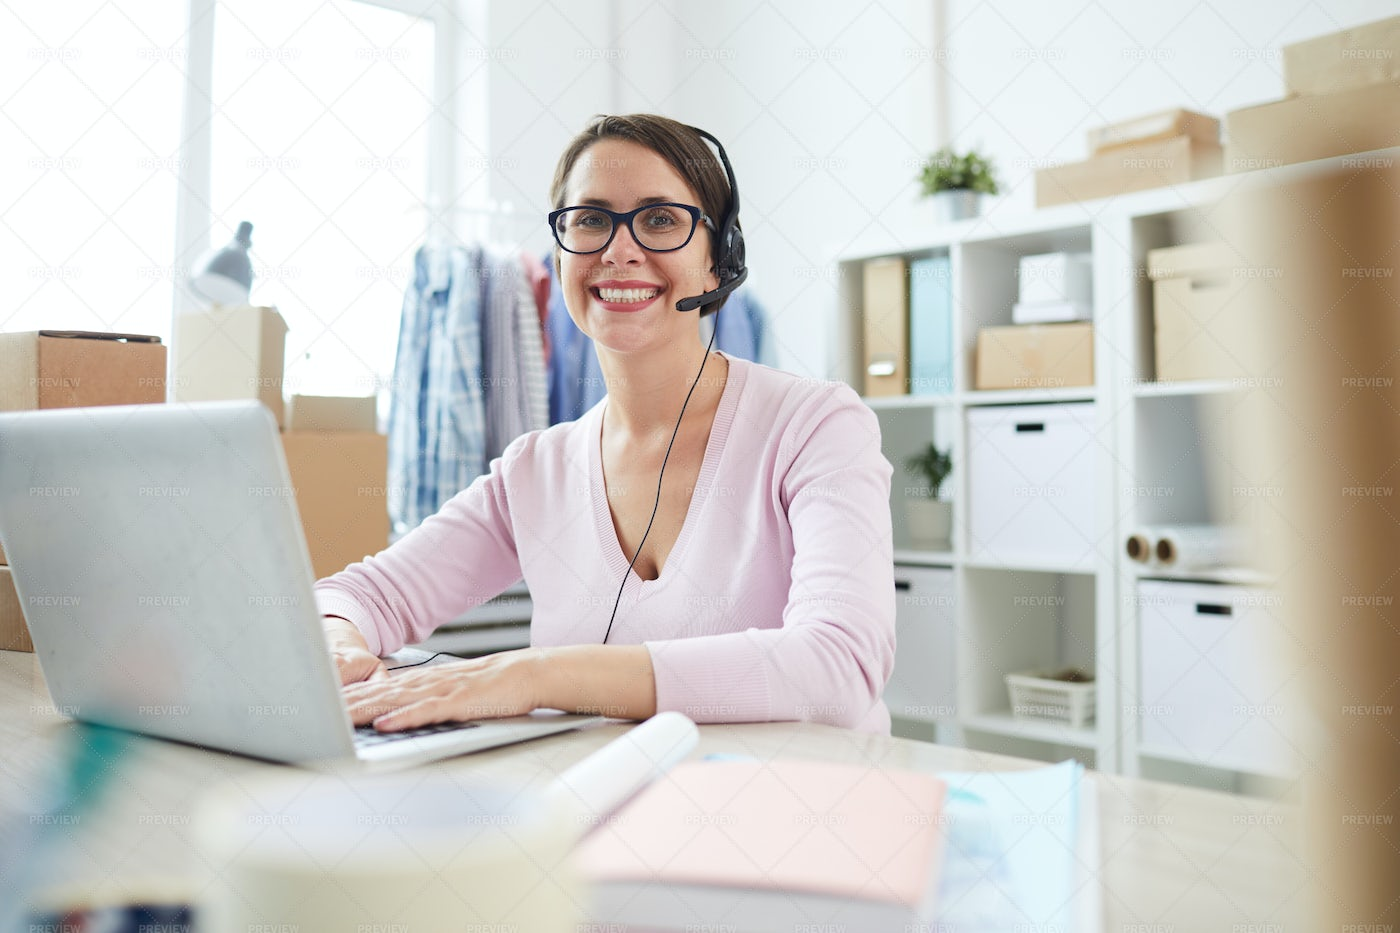 Successful Operator Looking At You...: Stock Photos